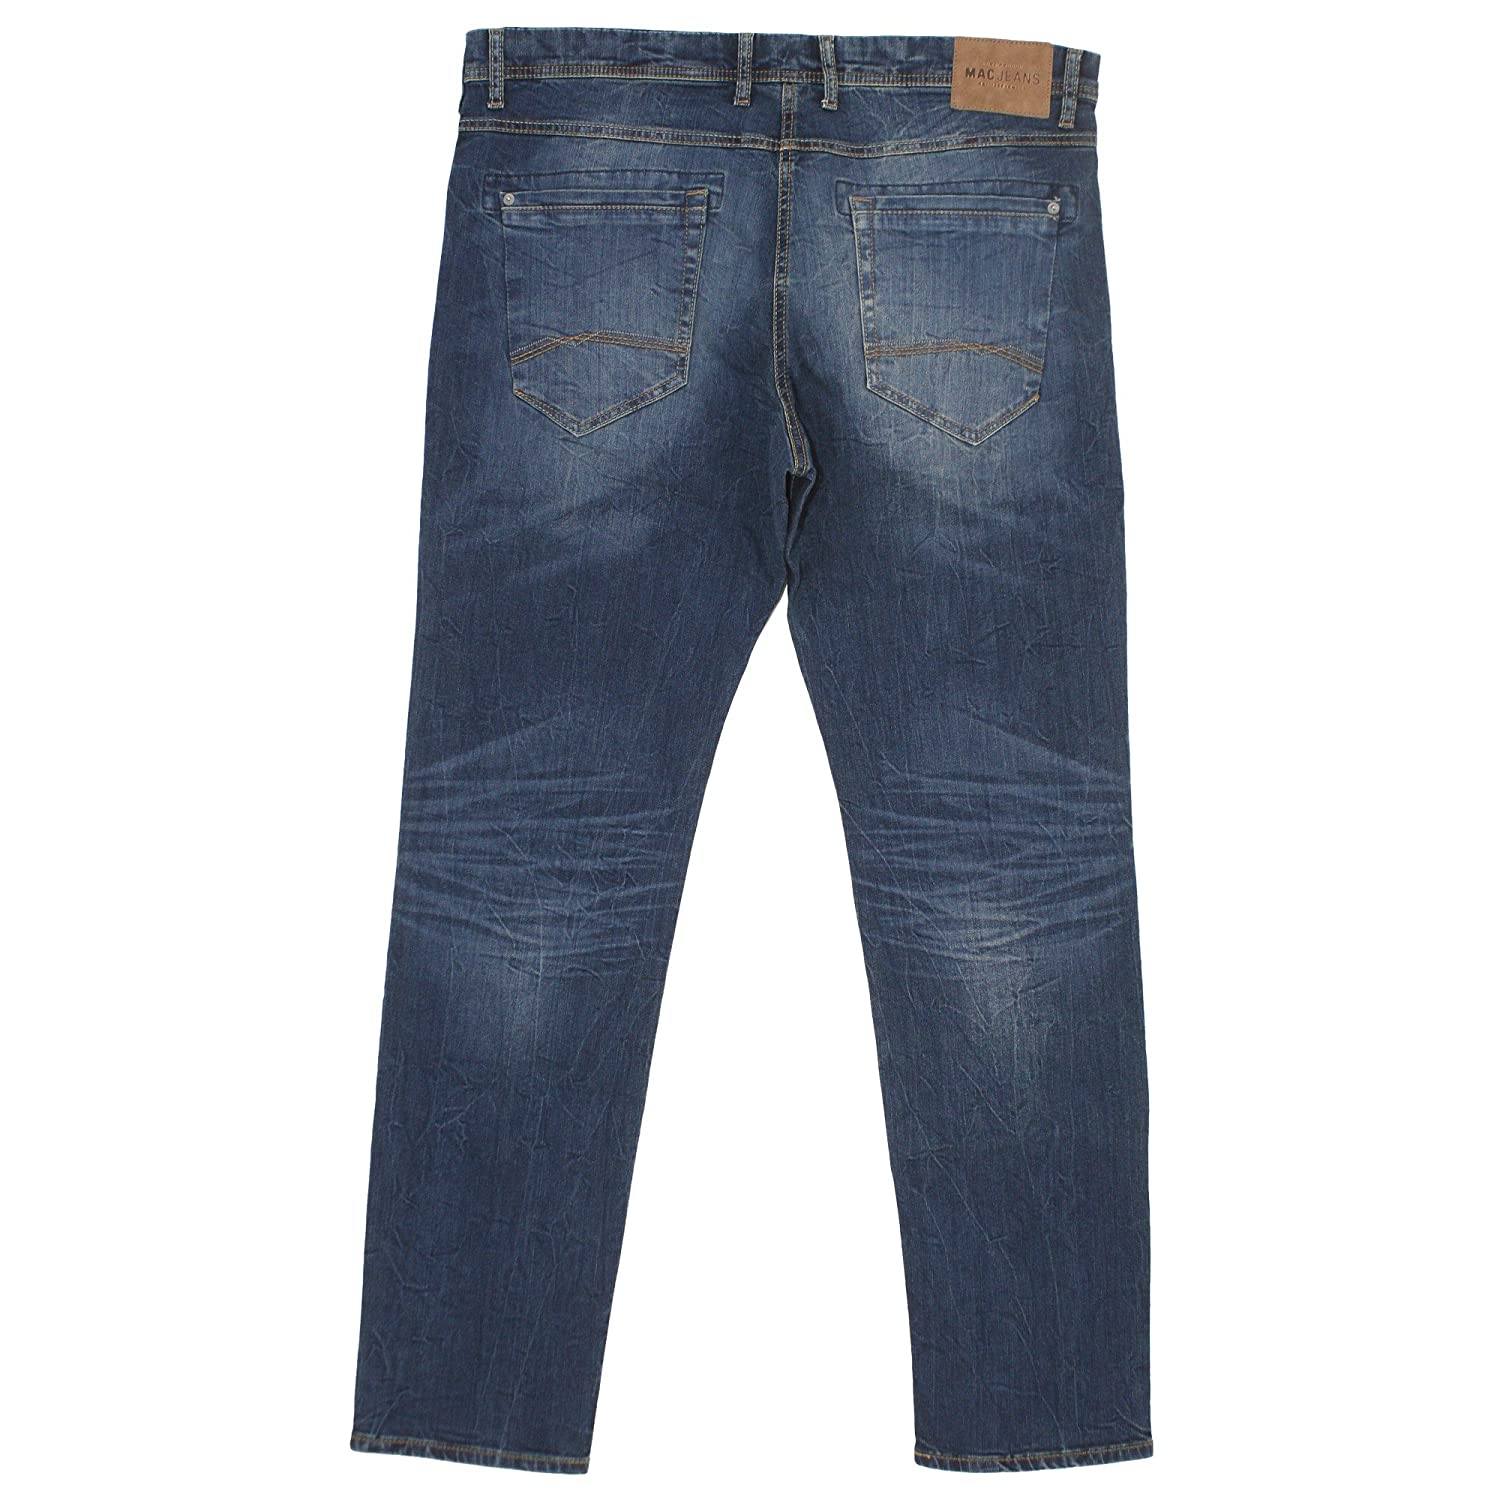 M.A.C. Mac Hombre Jeans Ben Pipe Regular Fit Recycled Denim ...